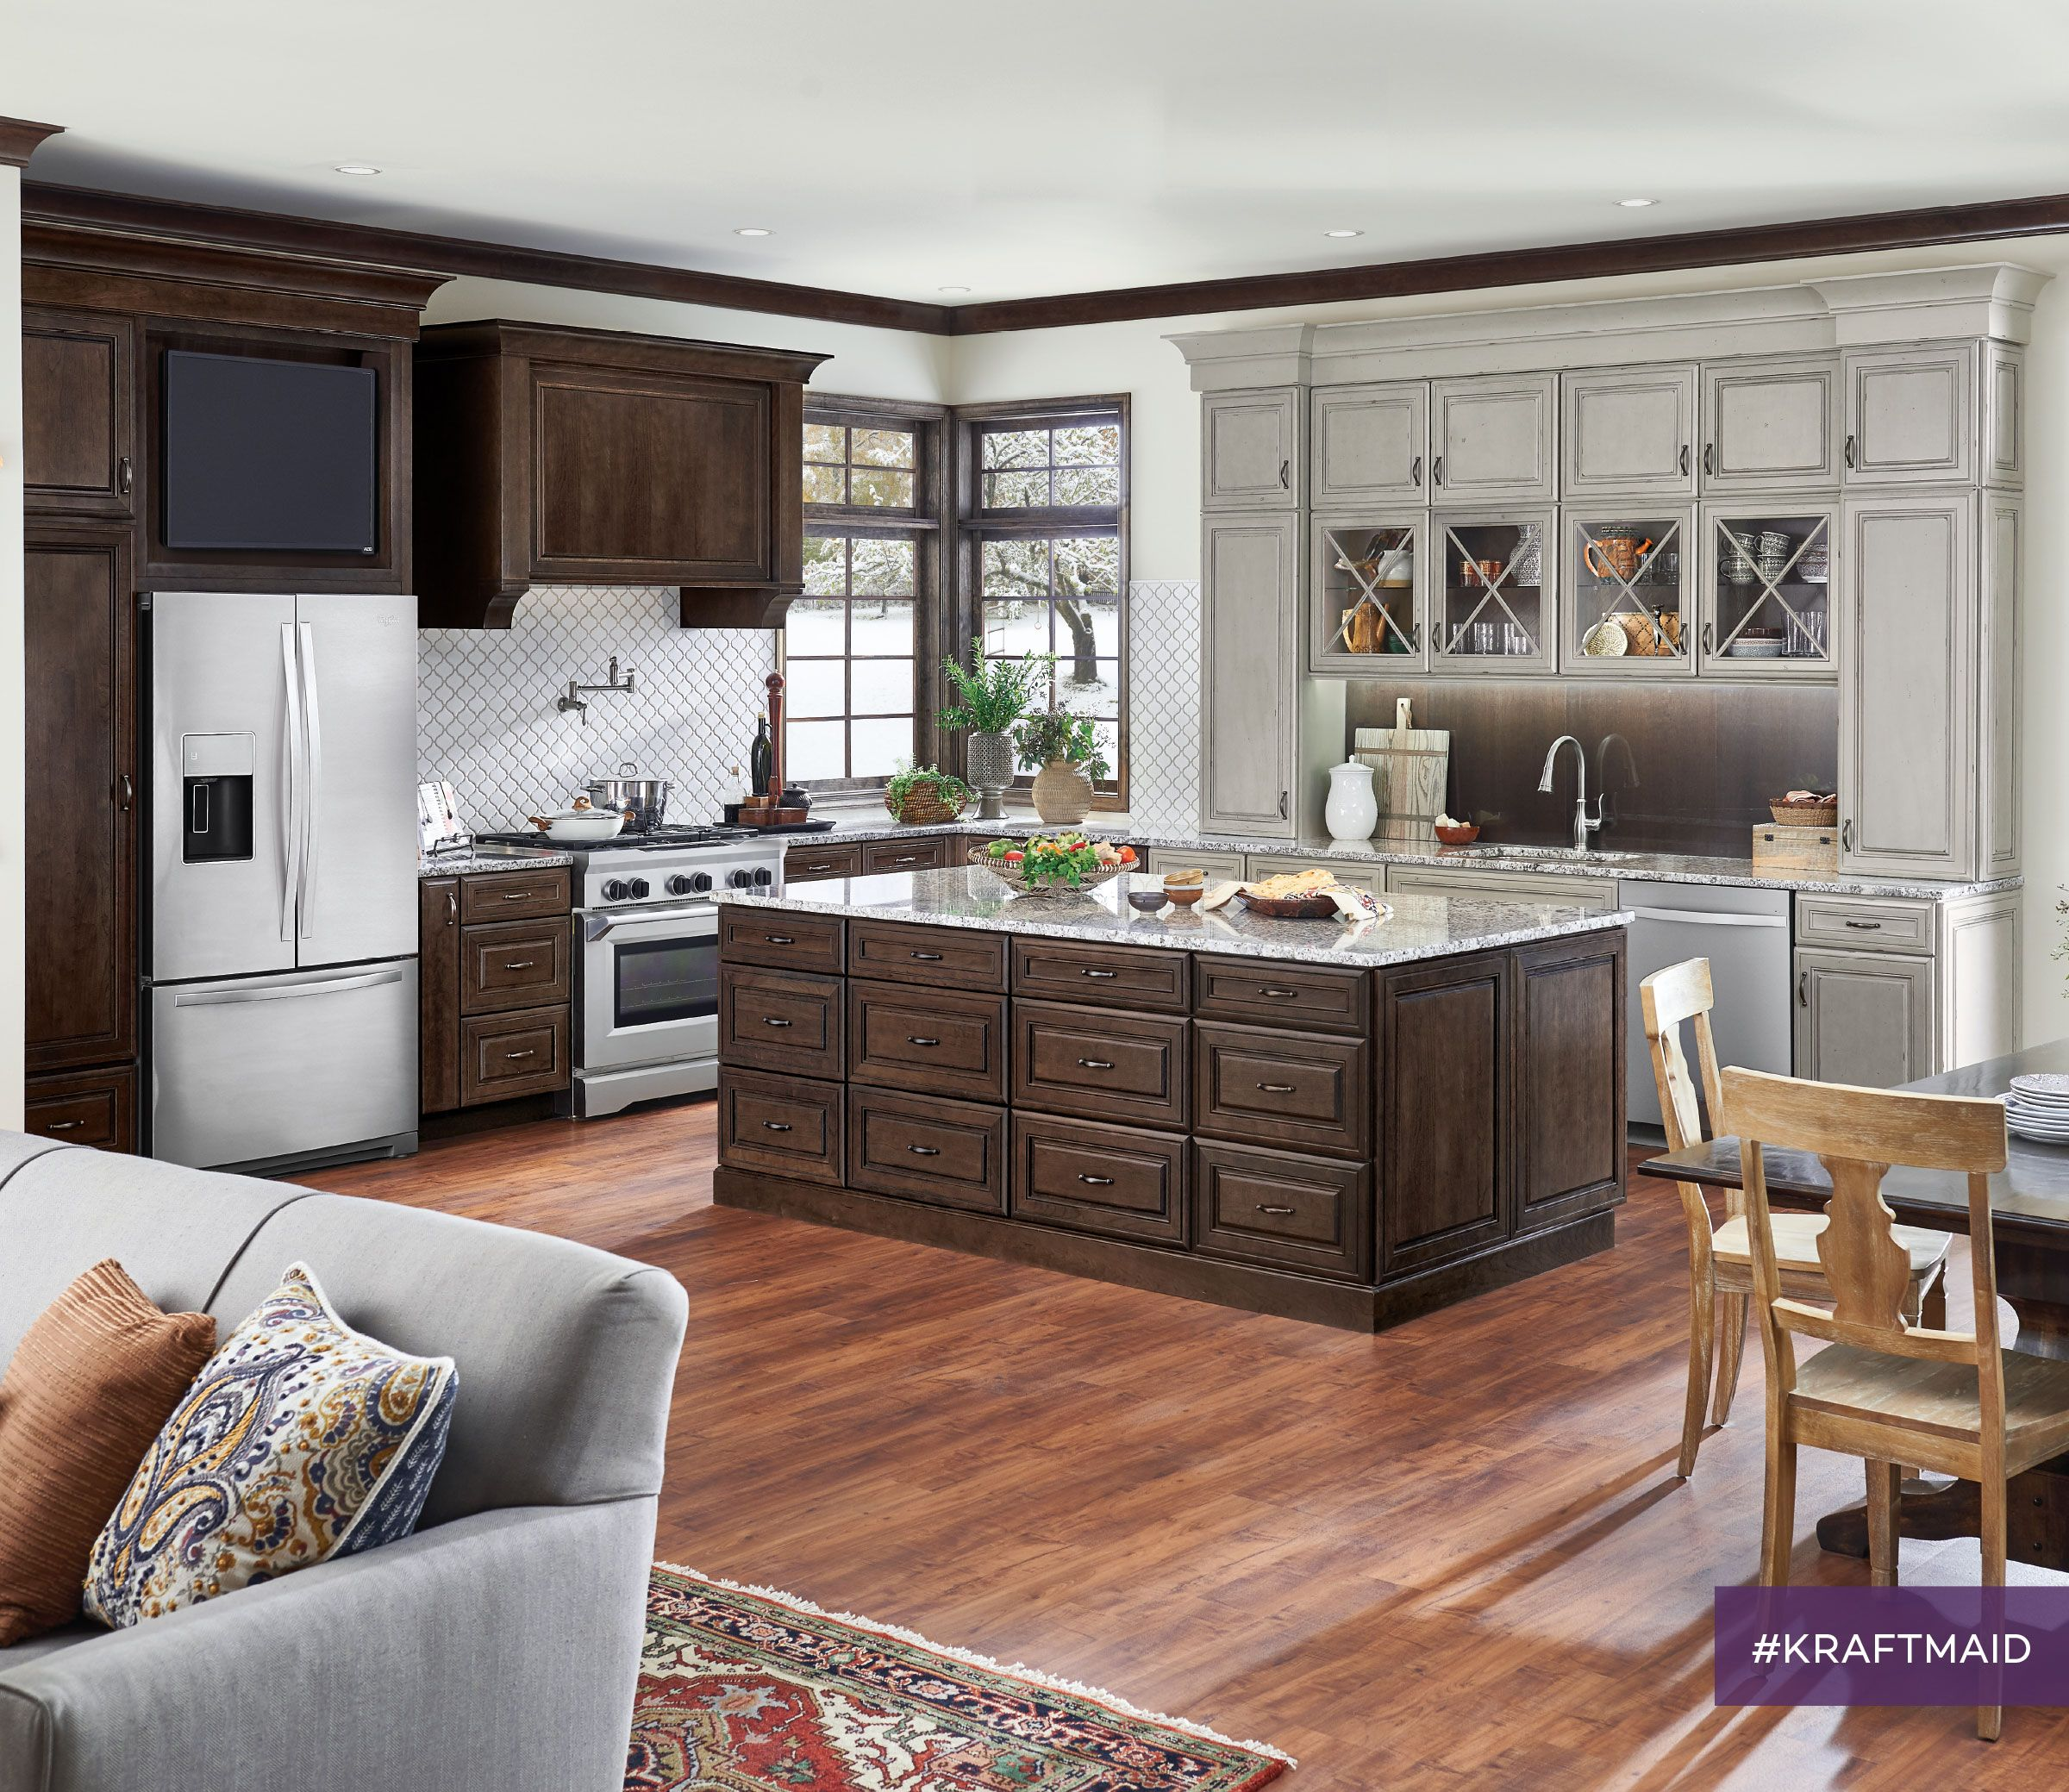 Hidden in this kitchen are multiple clever KraftMaid ...